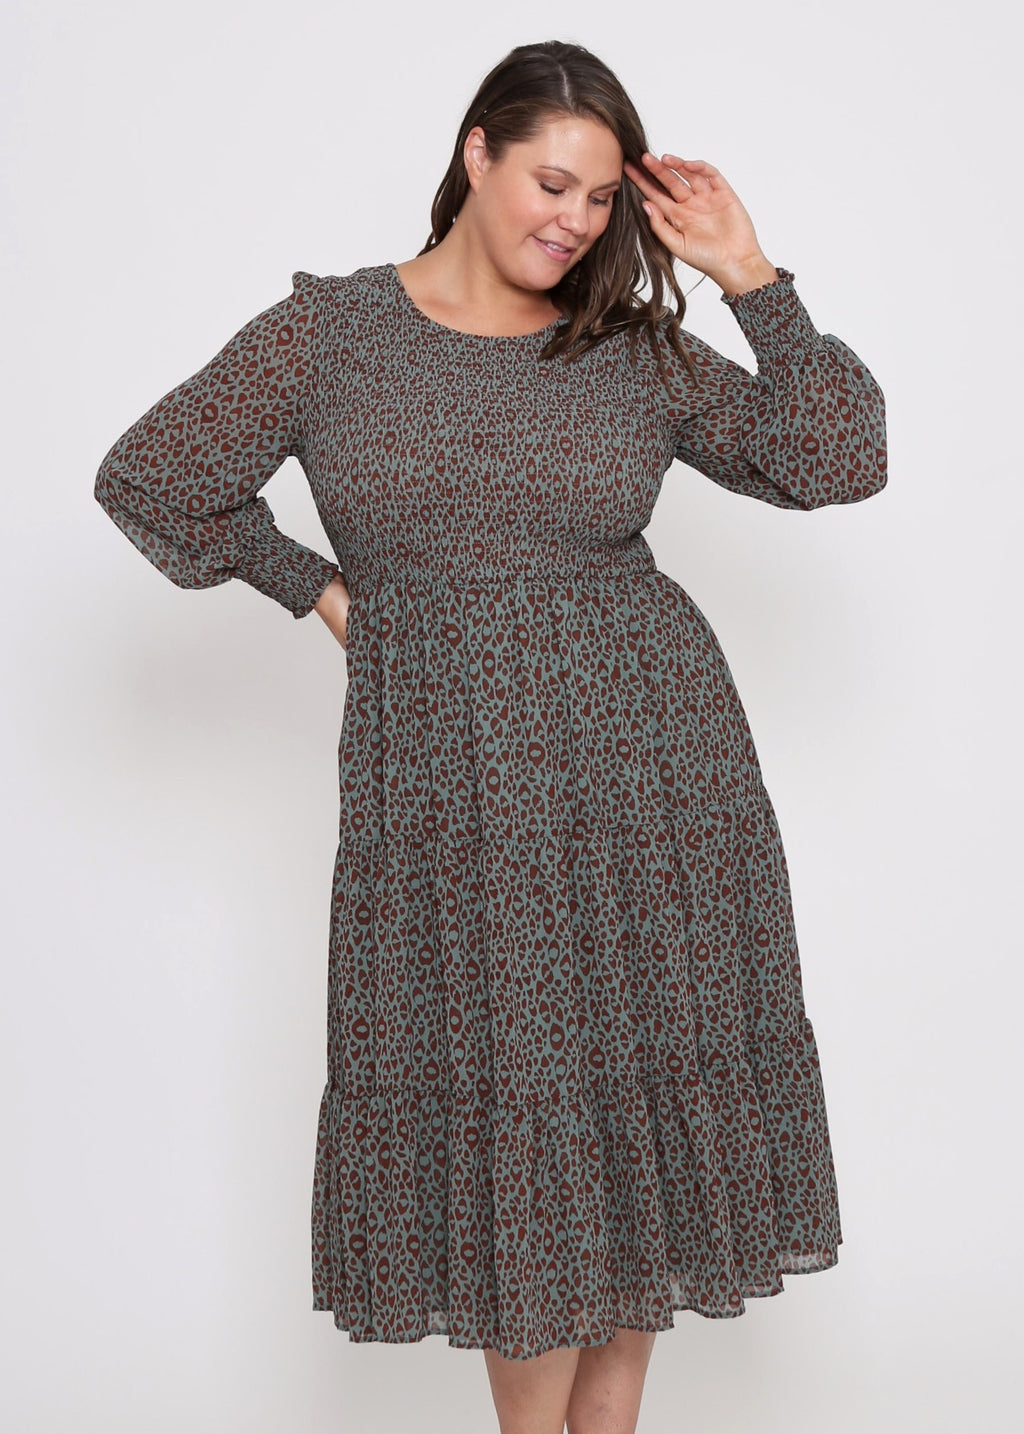 ZAREL DRESS - KHAKI LEOPARD